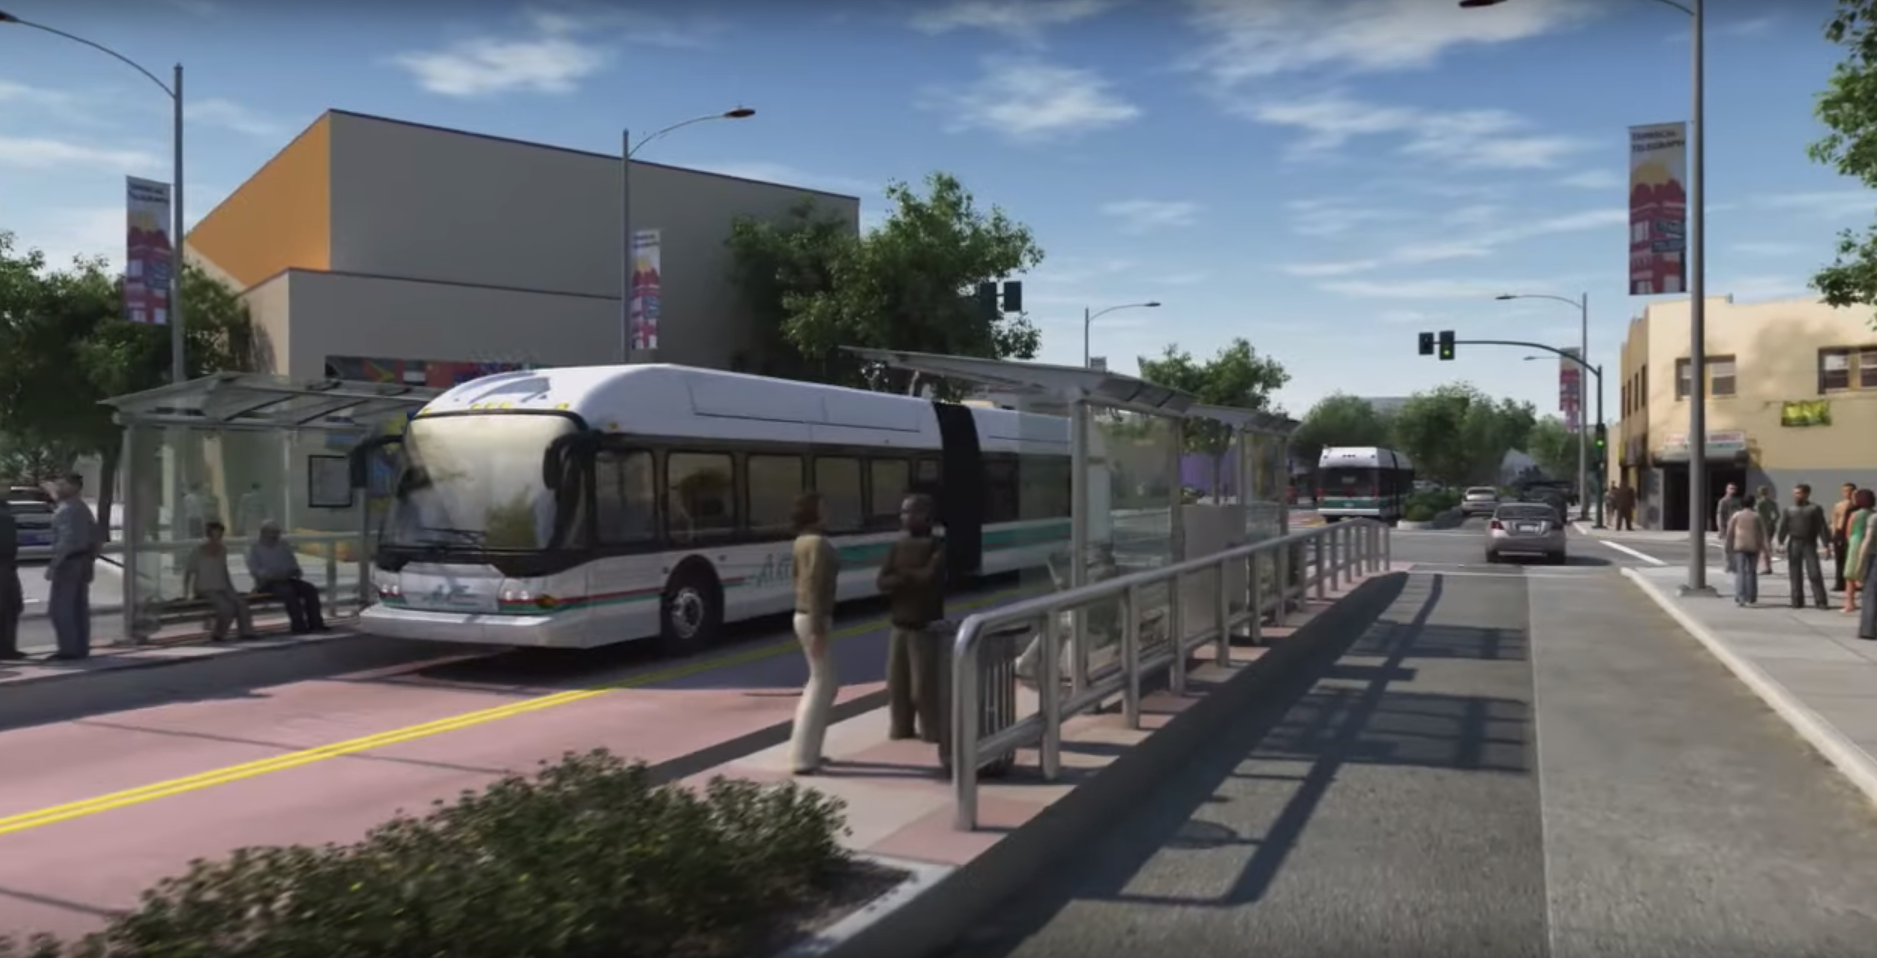 A rendering of Oakland's 'Bus Rapid Transit' project with buses and passengers. Image: AC Transit